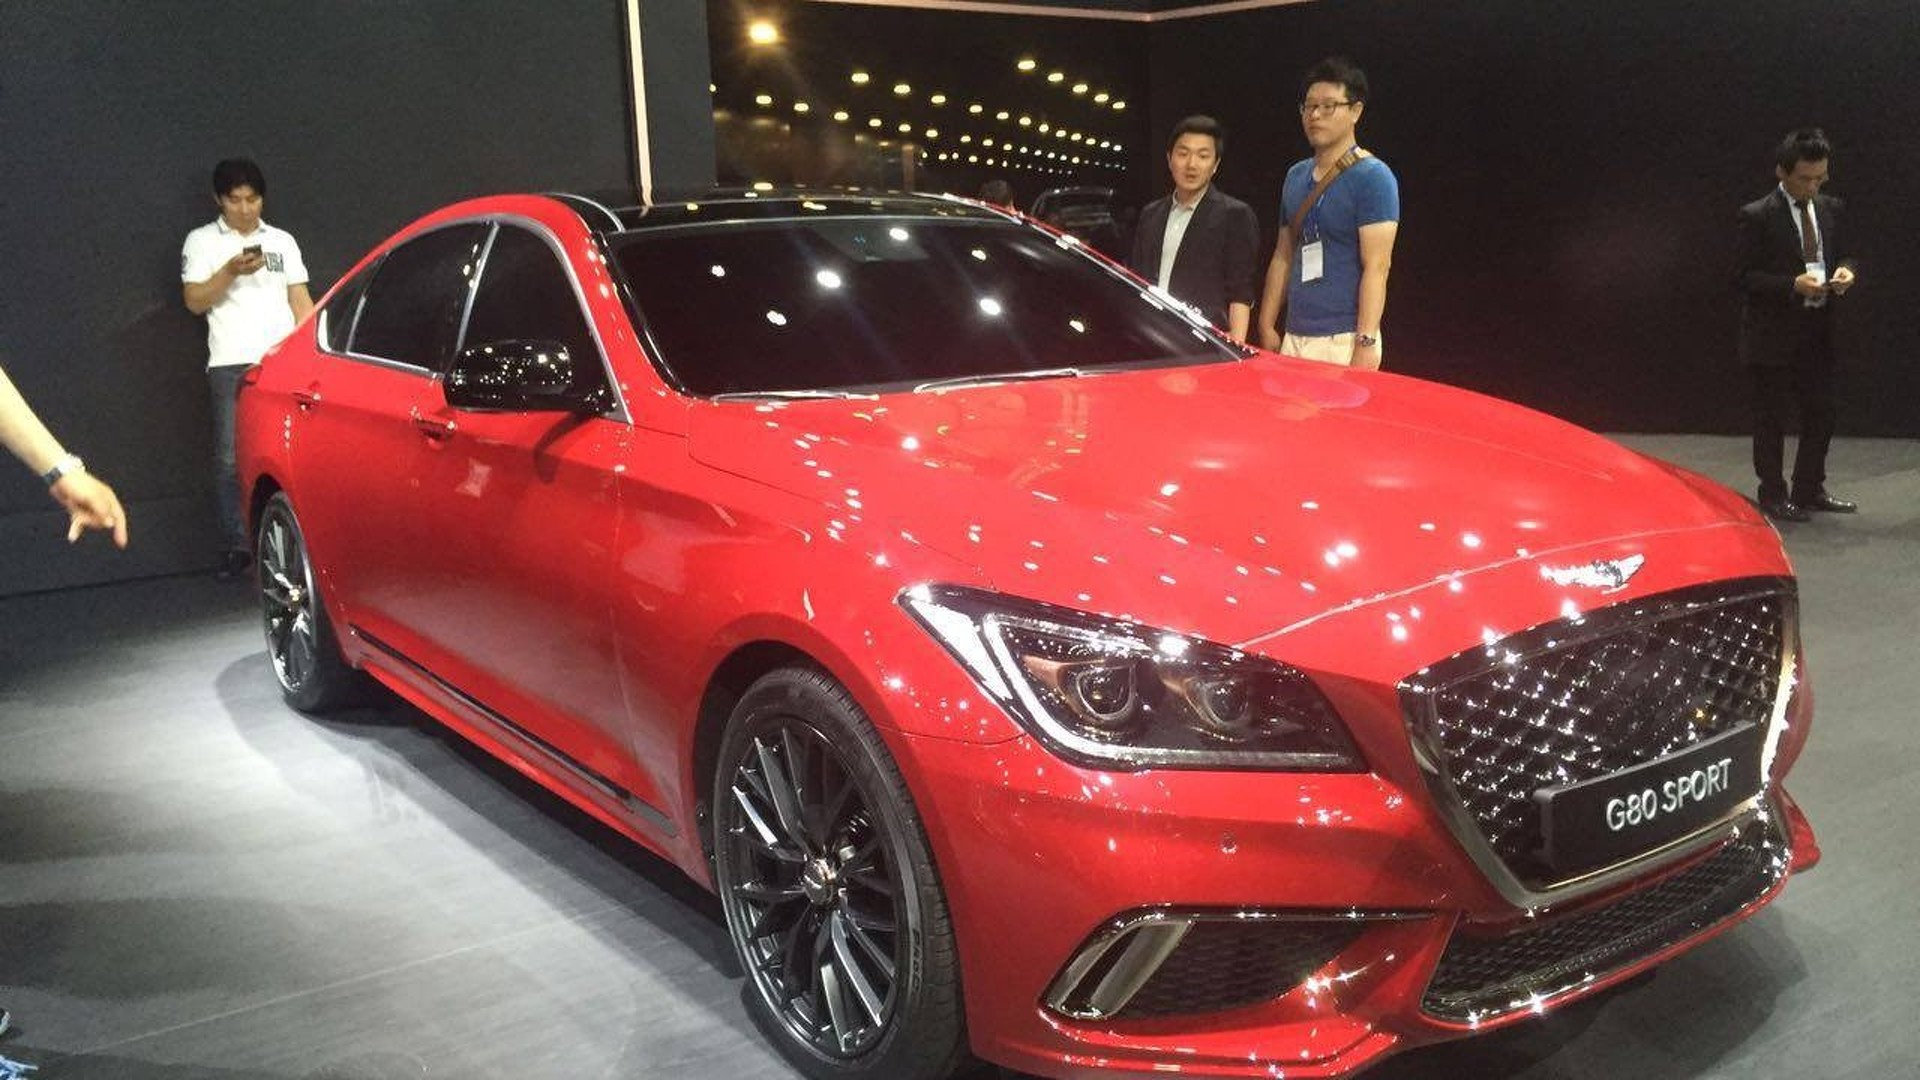 2017 genesis g80 debuts with sport version at busan motor show. Black Bedroom Furniture Sets. Home Design Ideas